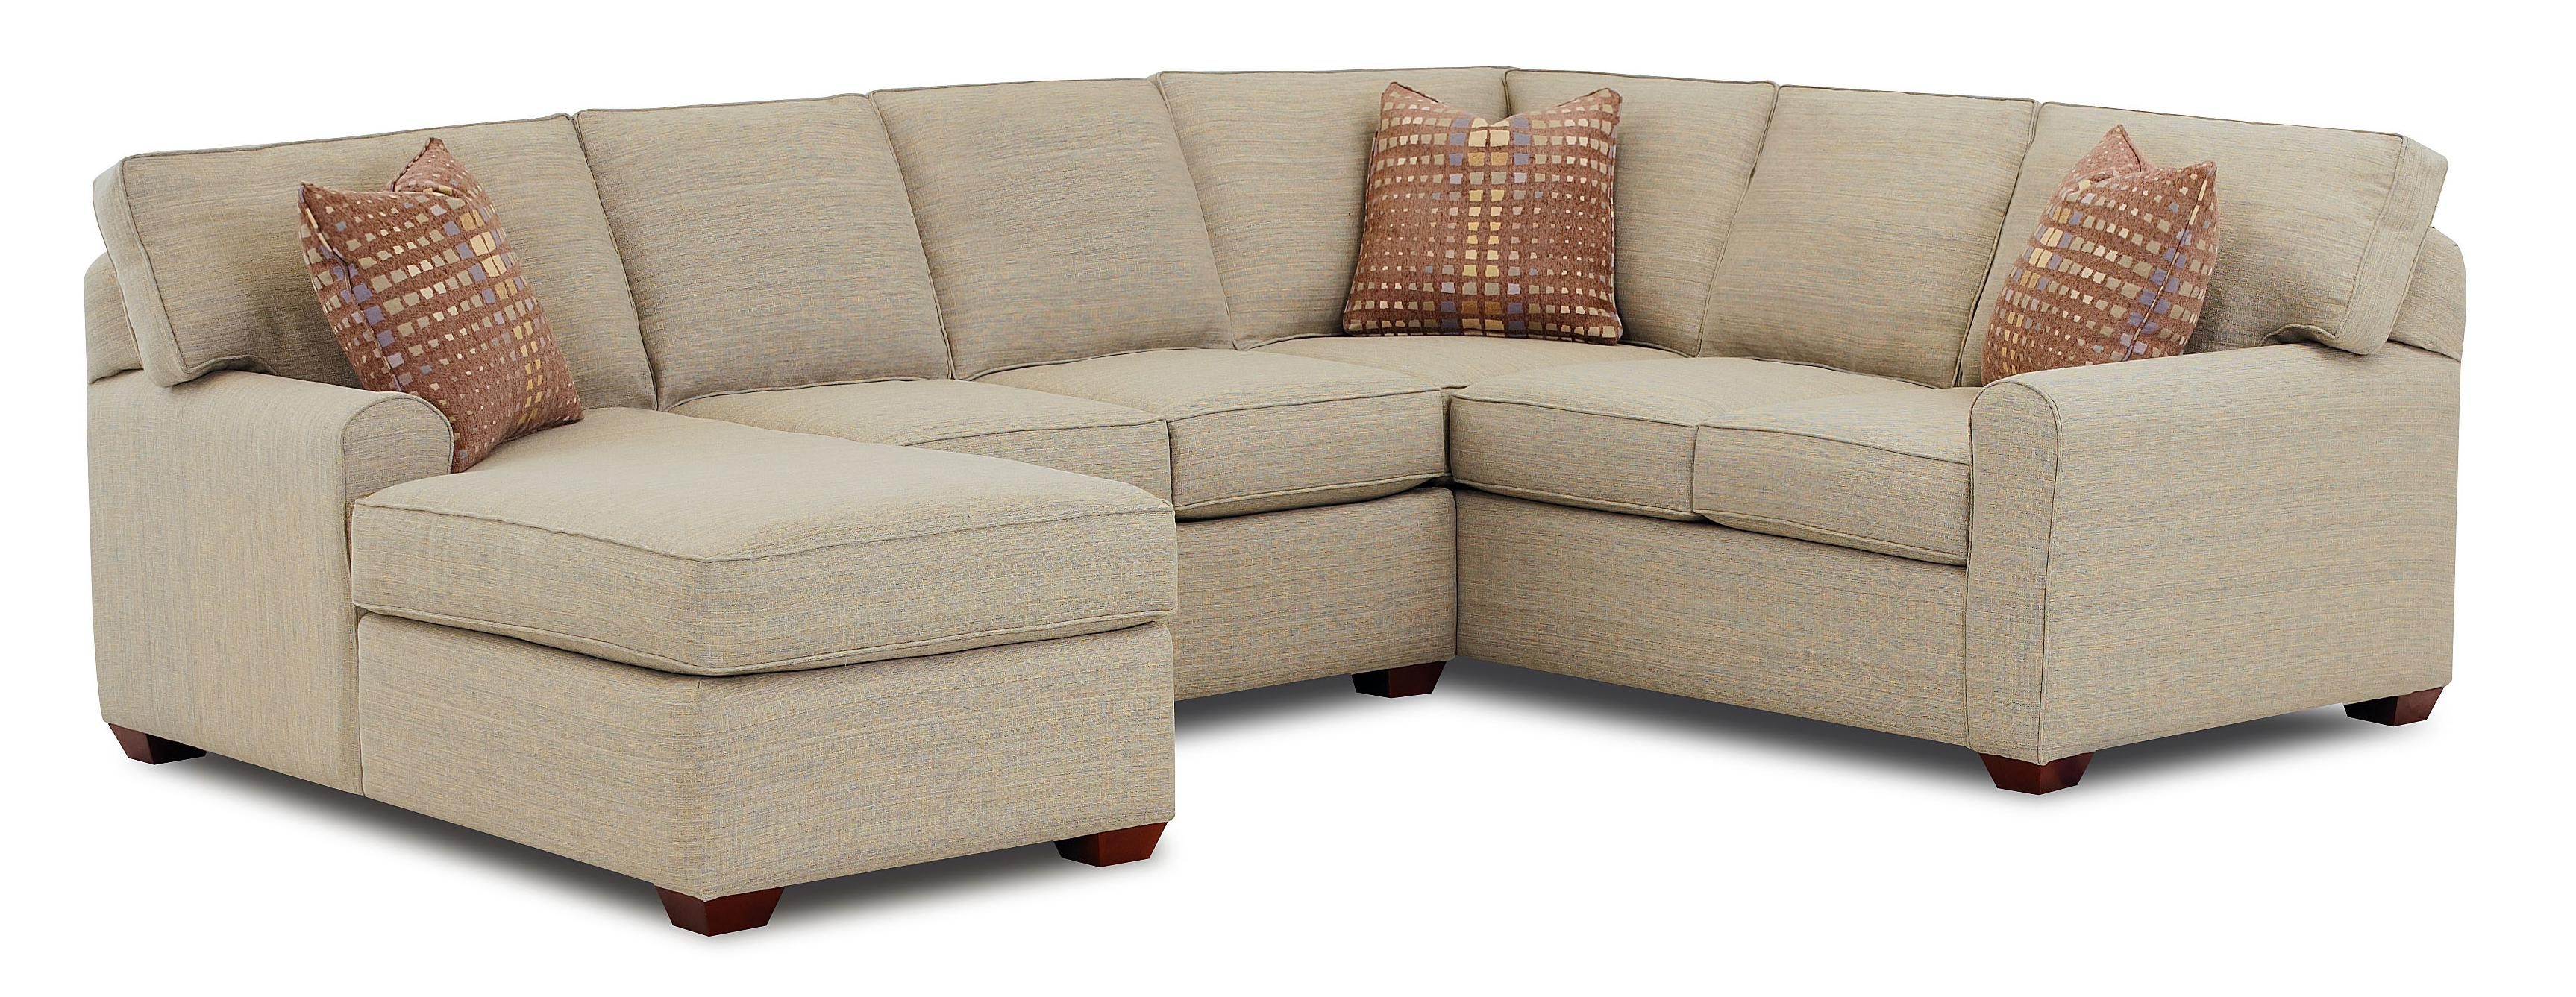 Sectional sofa with left facing chaise lounge Loveseat chaise sectional